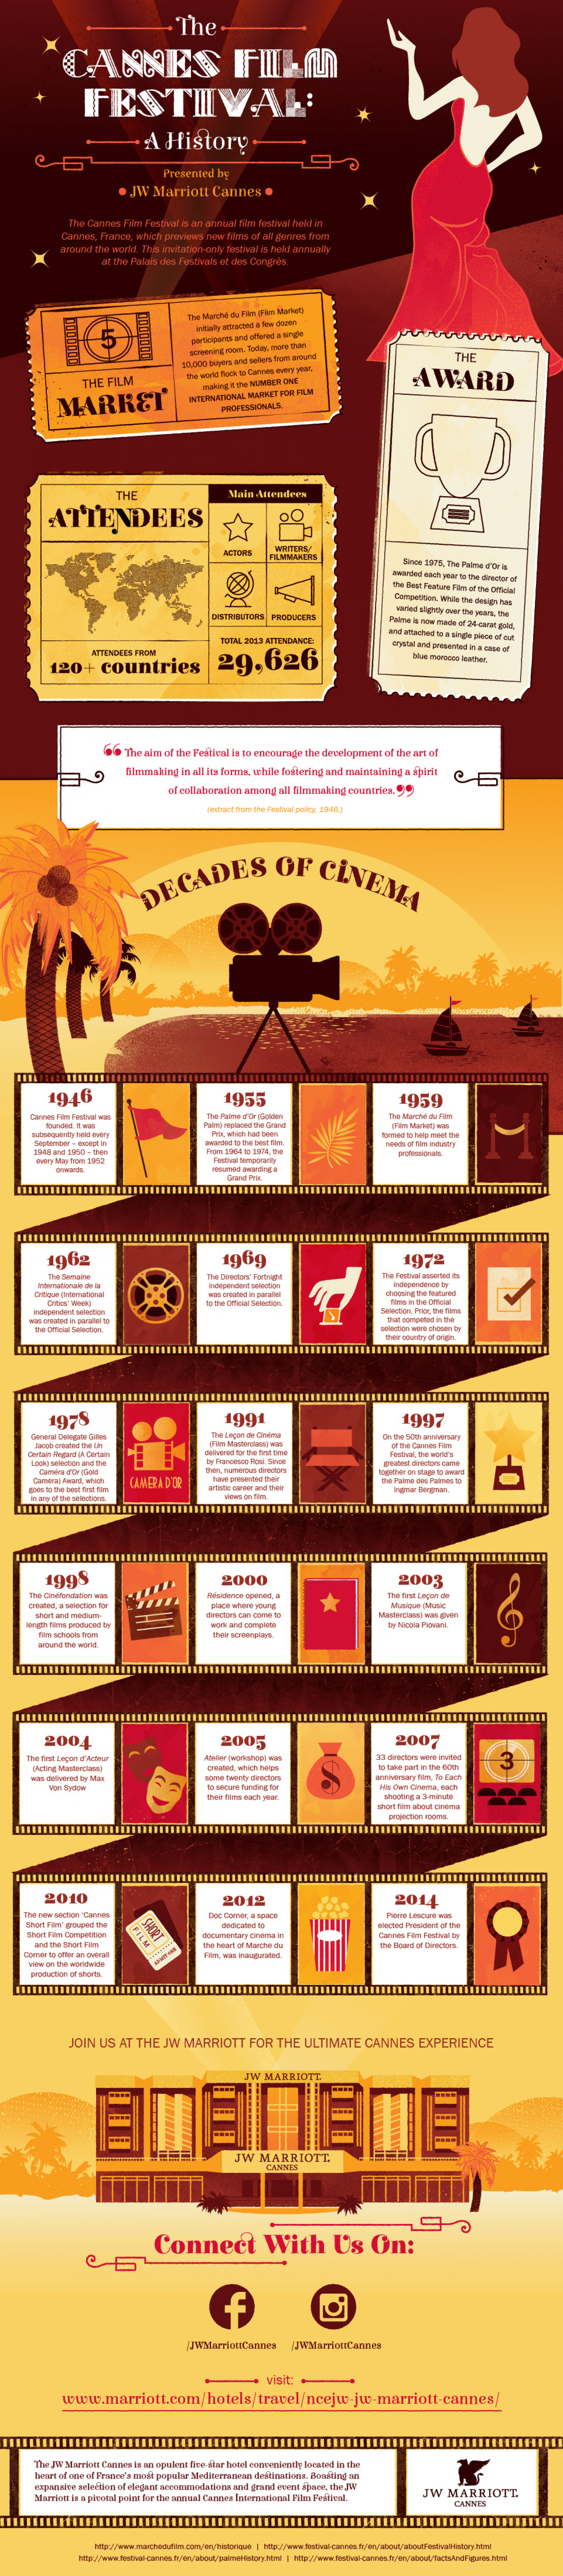 The Cannes Film Festival: A History Infographic